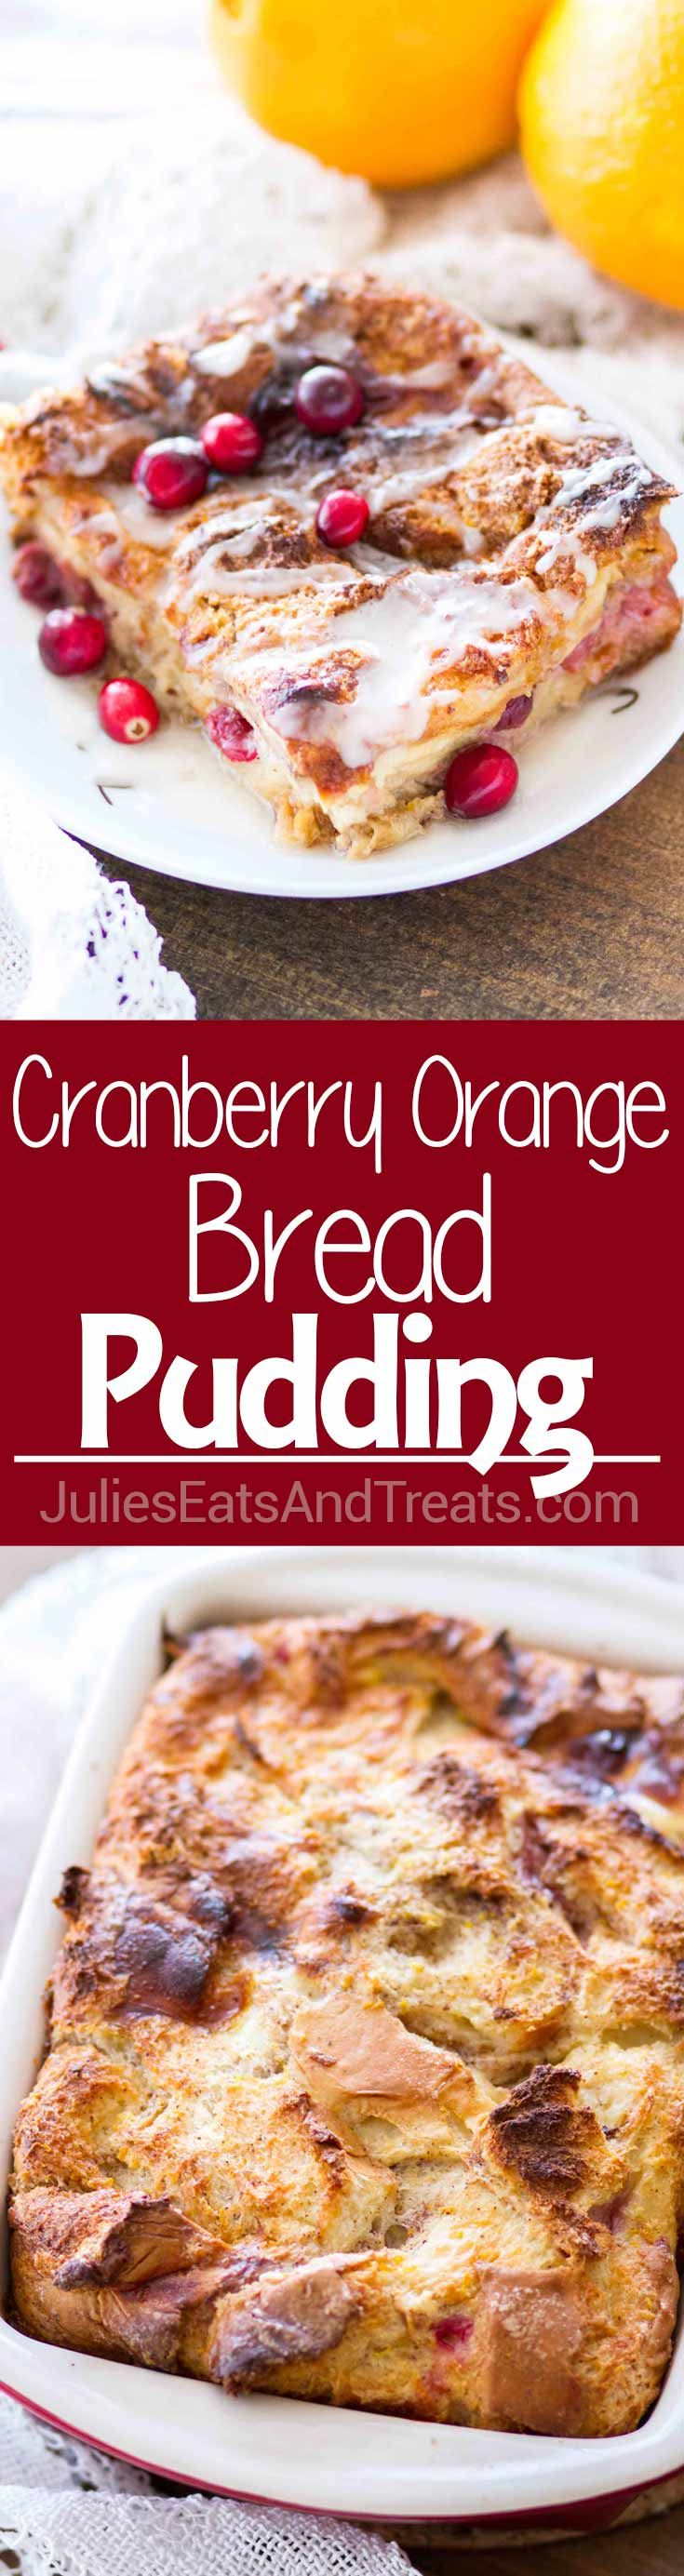 Cranberry Orange Bread Pudding~Easy Homemade Bread Pudding Recipe Topped with an Orange Glaze, and is the Perfect Holiday Dessert! It Comes Together Quickly and is a Crowd Pleaser! via @julieseats